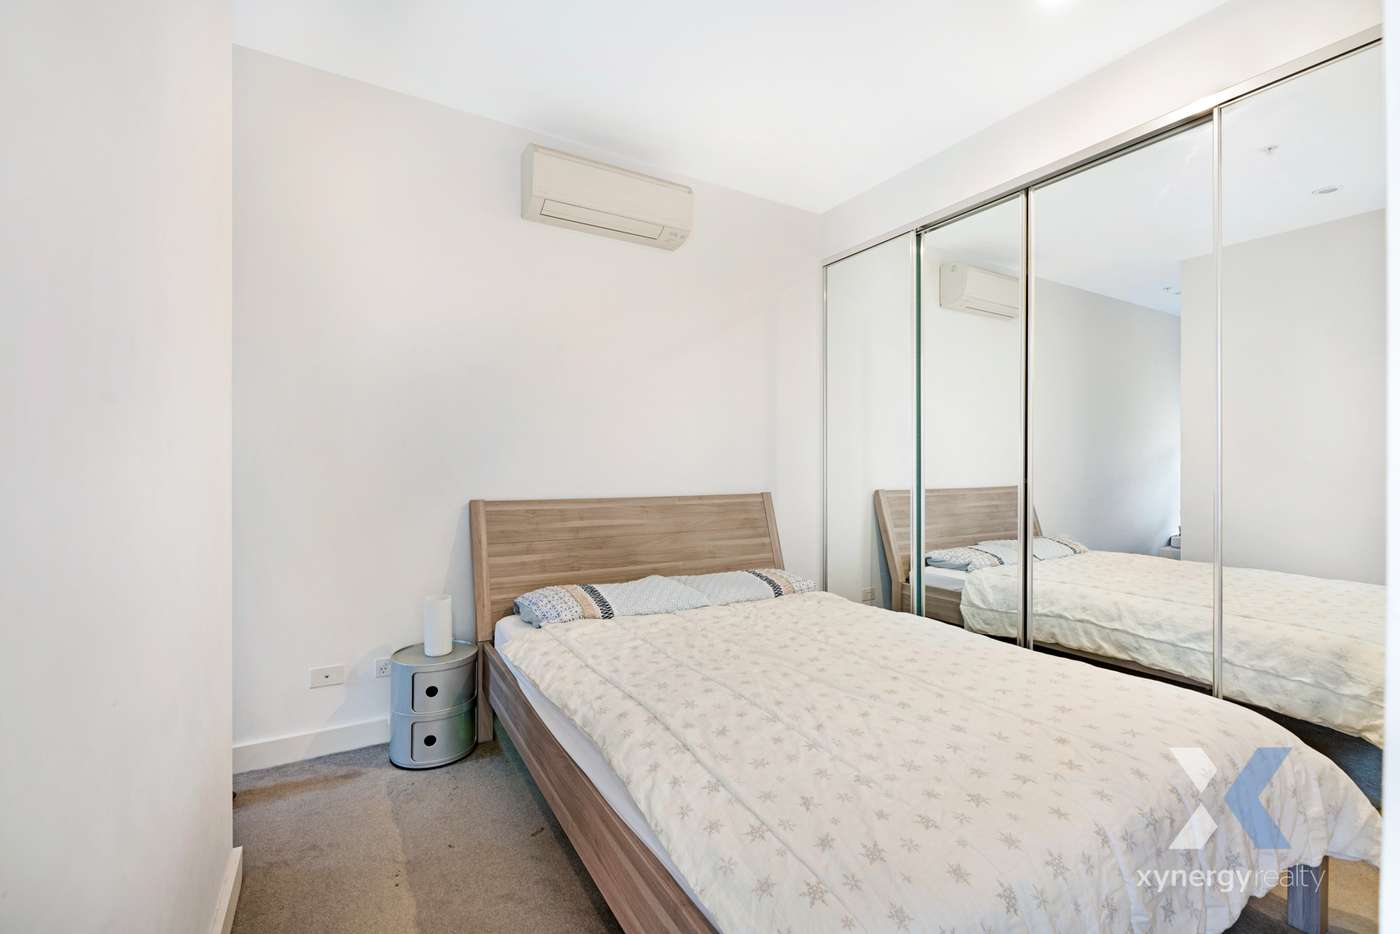 Fifth view of Homely apartment listing, 521/35 Malcolm Street, South Yarra VIC 3141